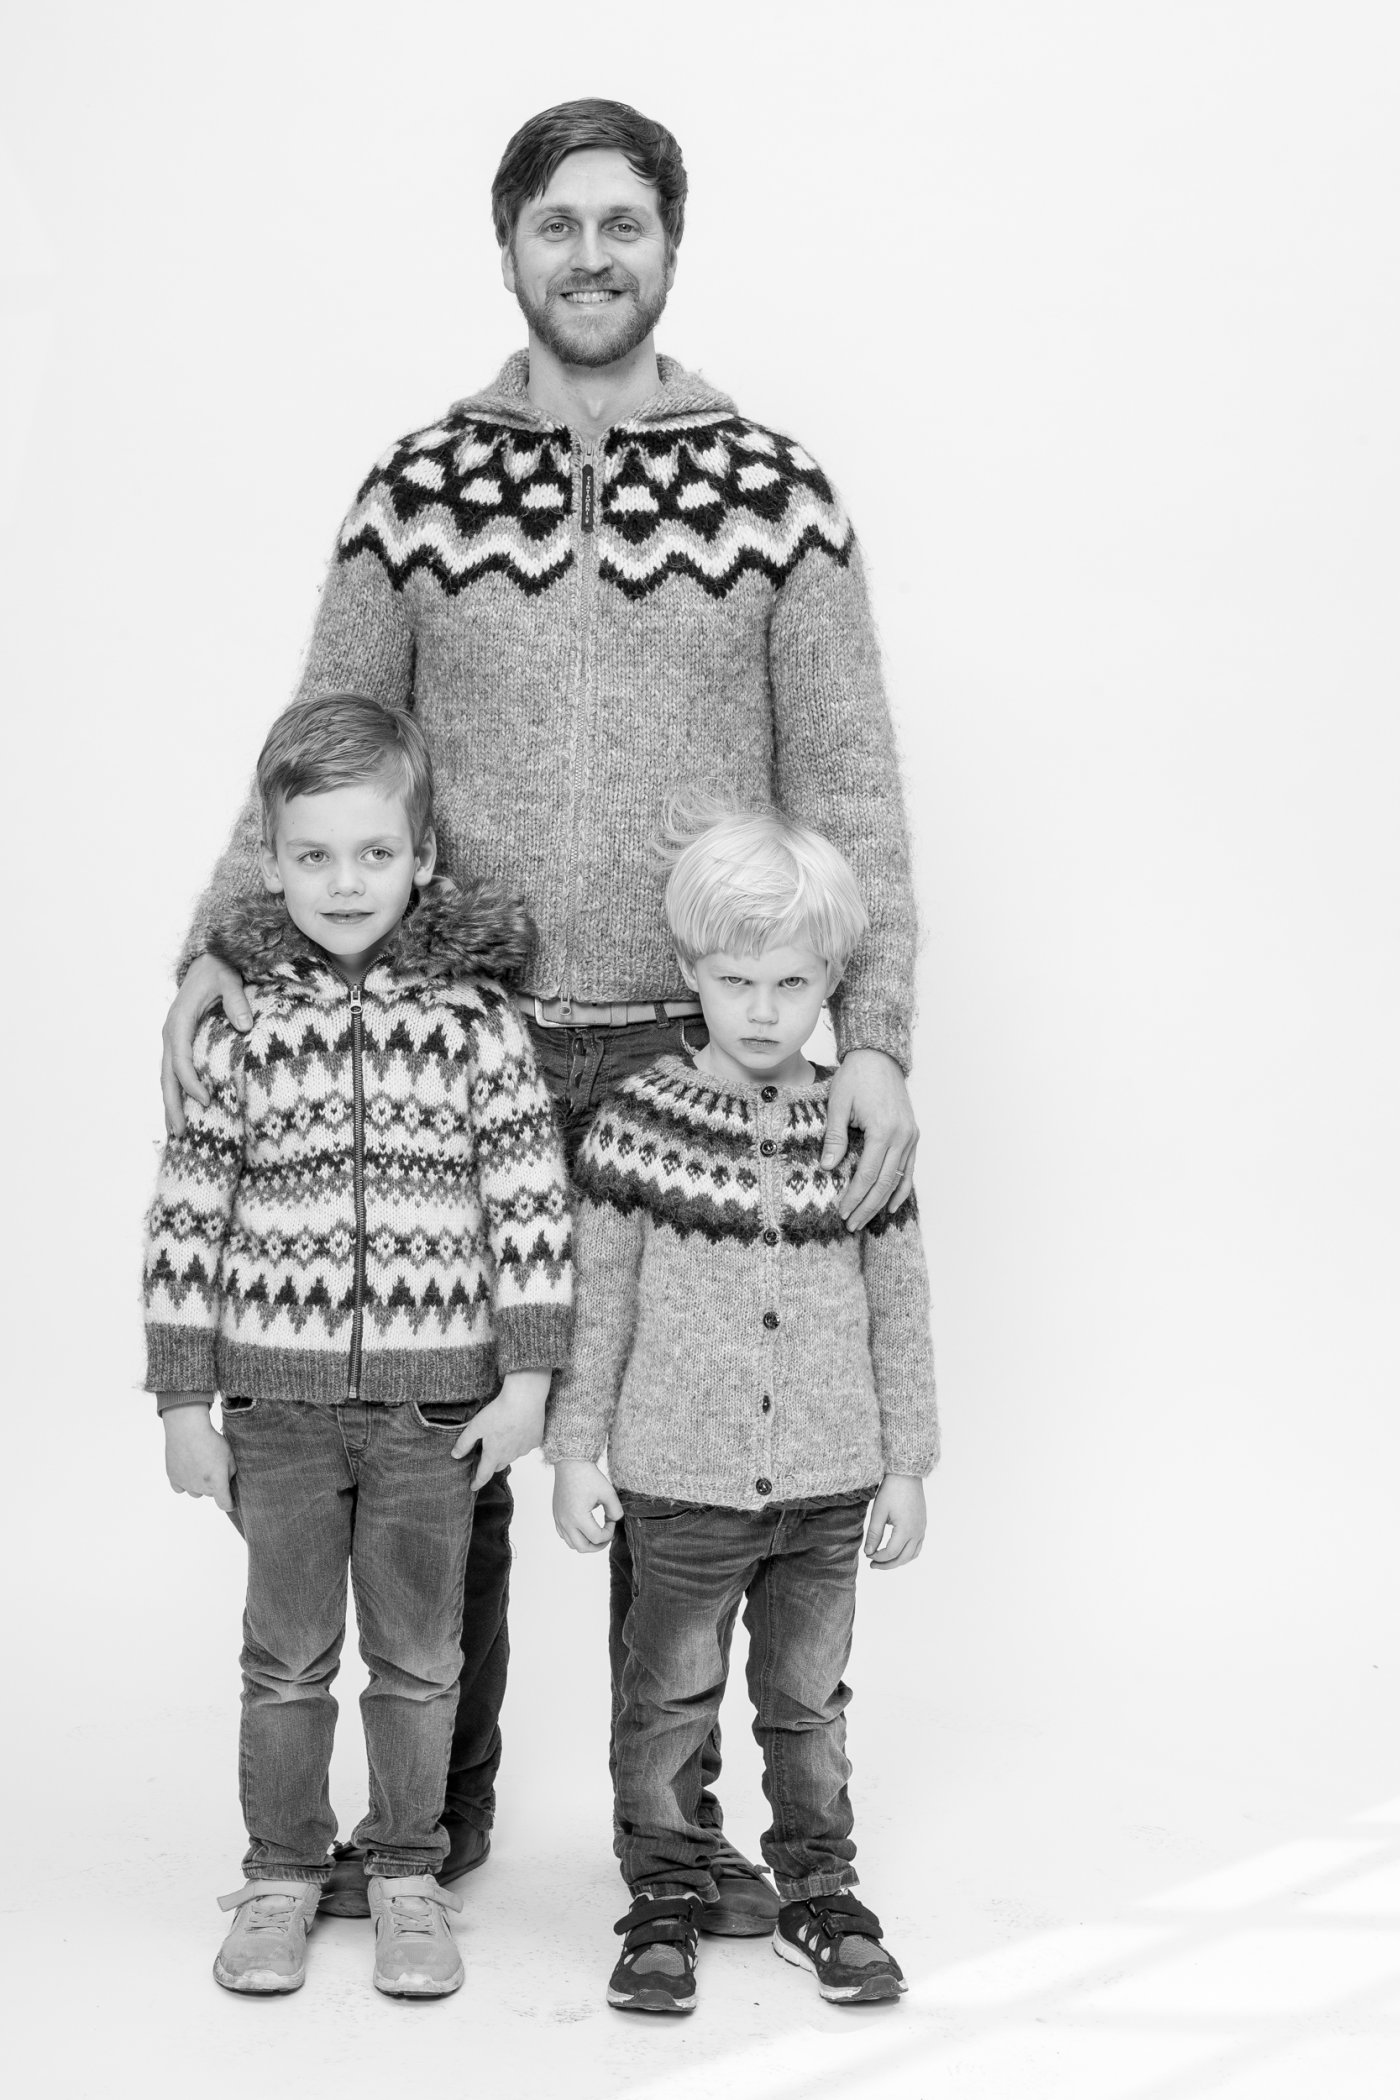 Ernir Erlingsson with his kids